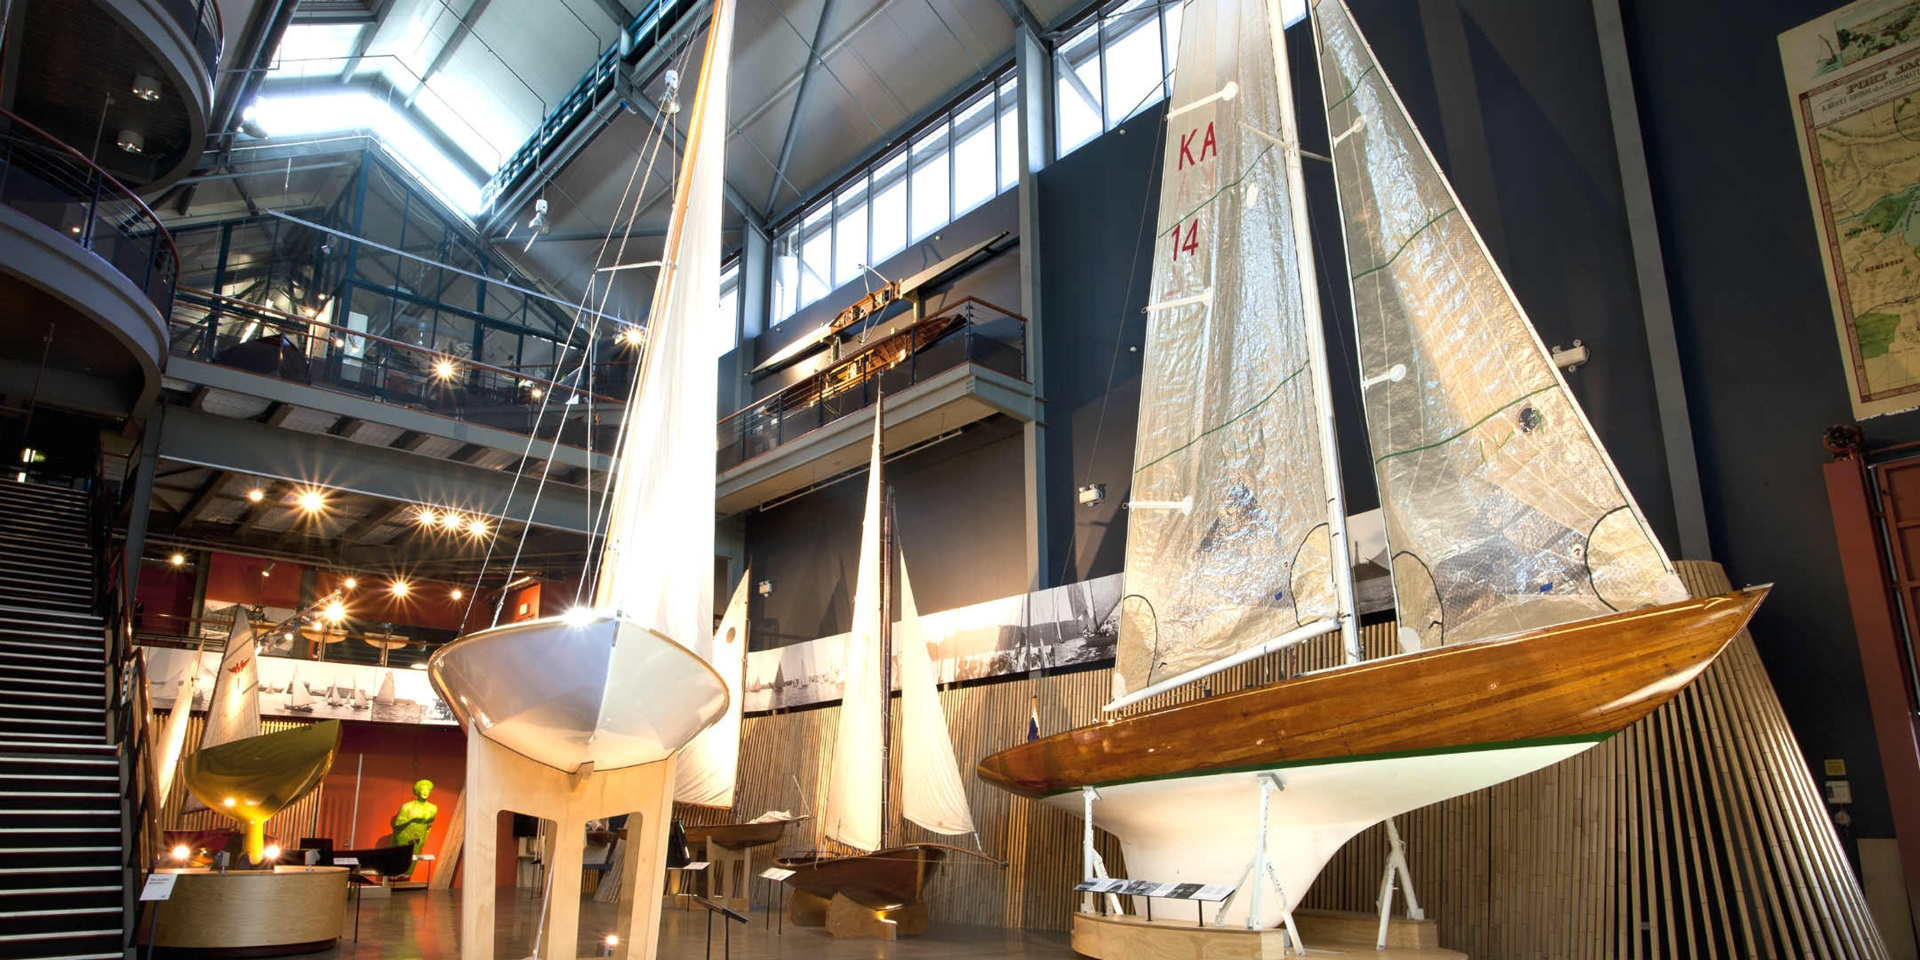 Interior views of the Wharf 7 building foyer. Pictured are various Sydney Heritage Fleet small boats.